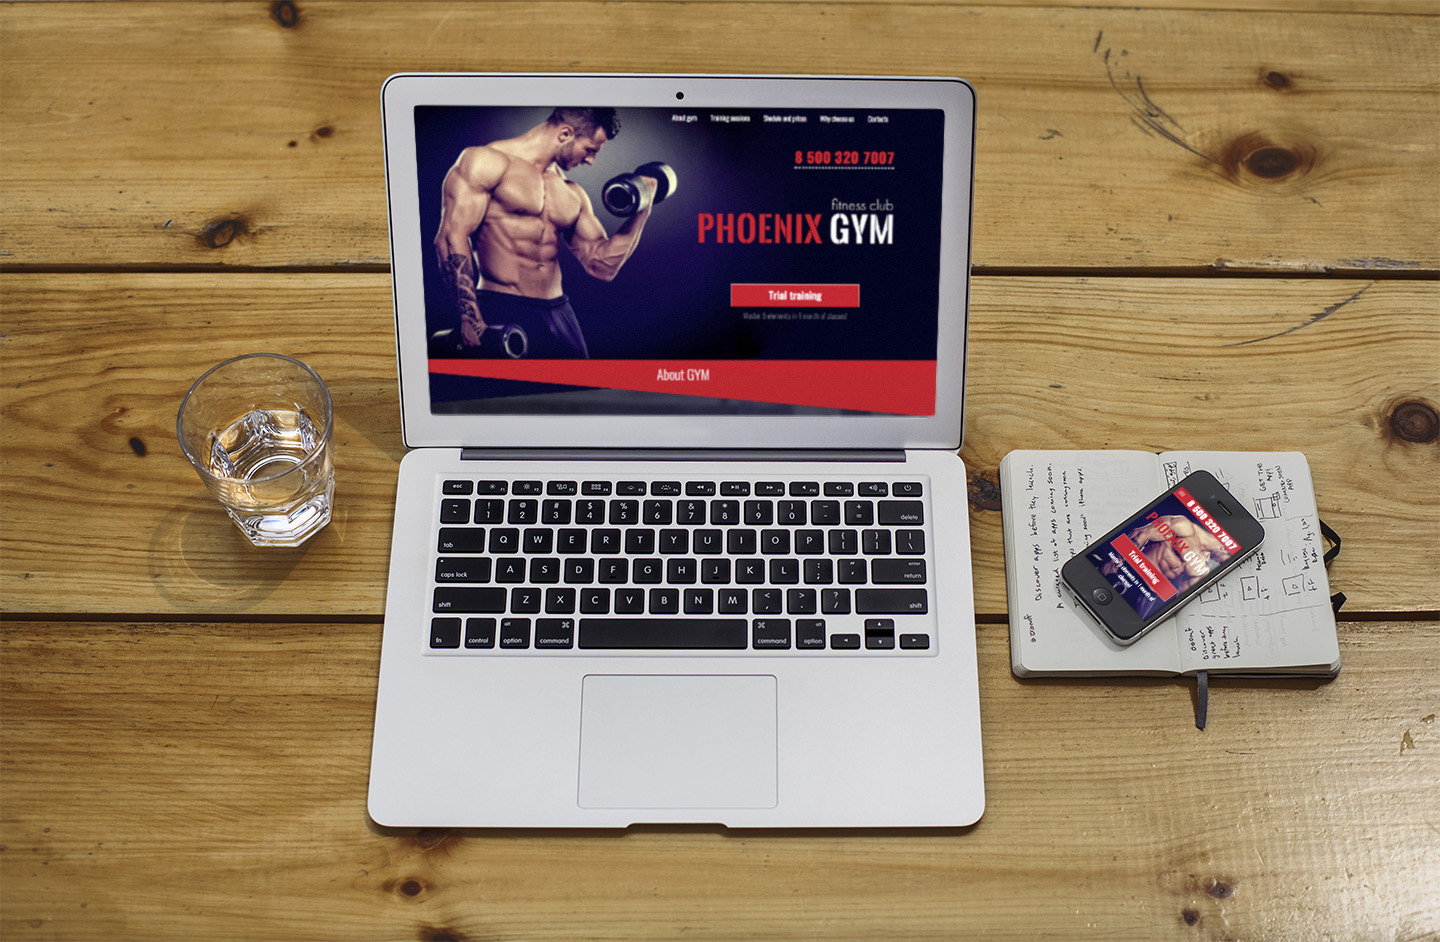 Phoenix gym gym and fitness club responsive html template by kovalmax phoenix gym is a responsive html template what is perfect for build any type of gym fitness center or health club its one page template is well organized maxwellsz